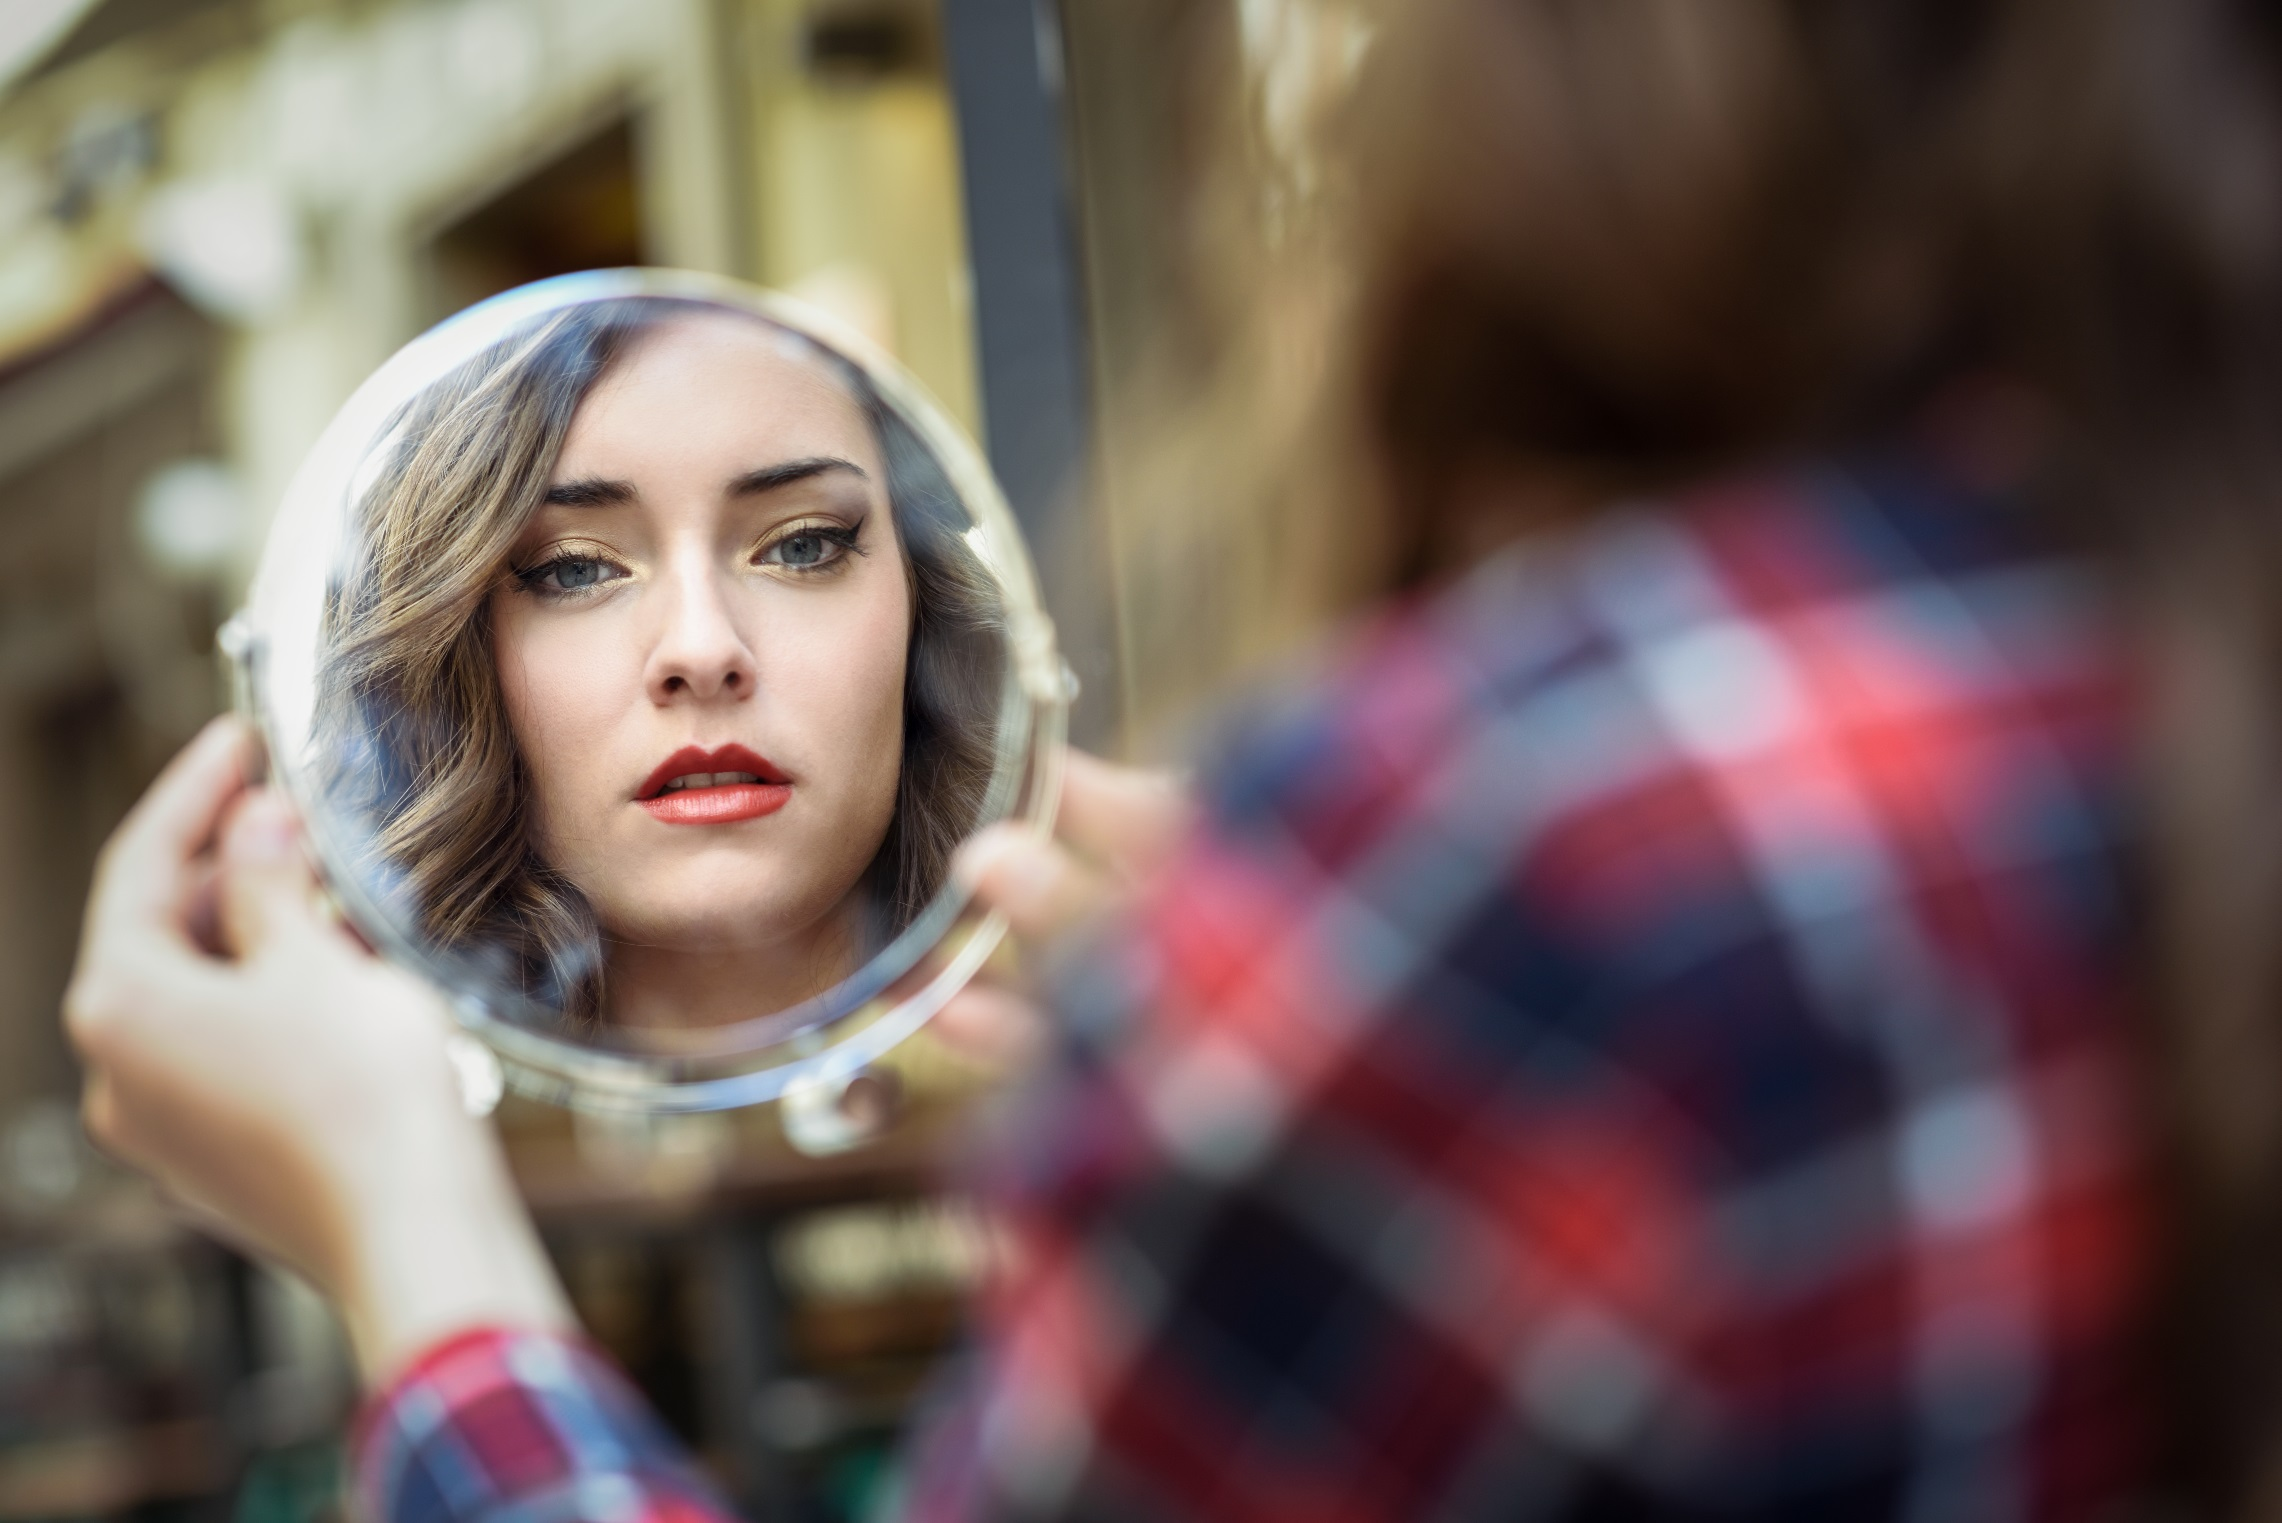 Portrait of young woman looking at herself in a little mirror in urban background.